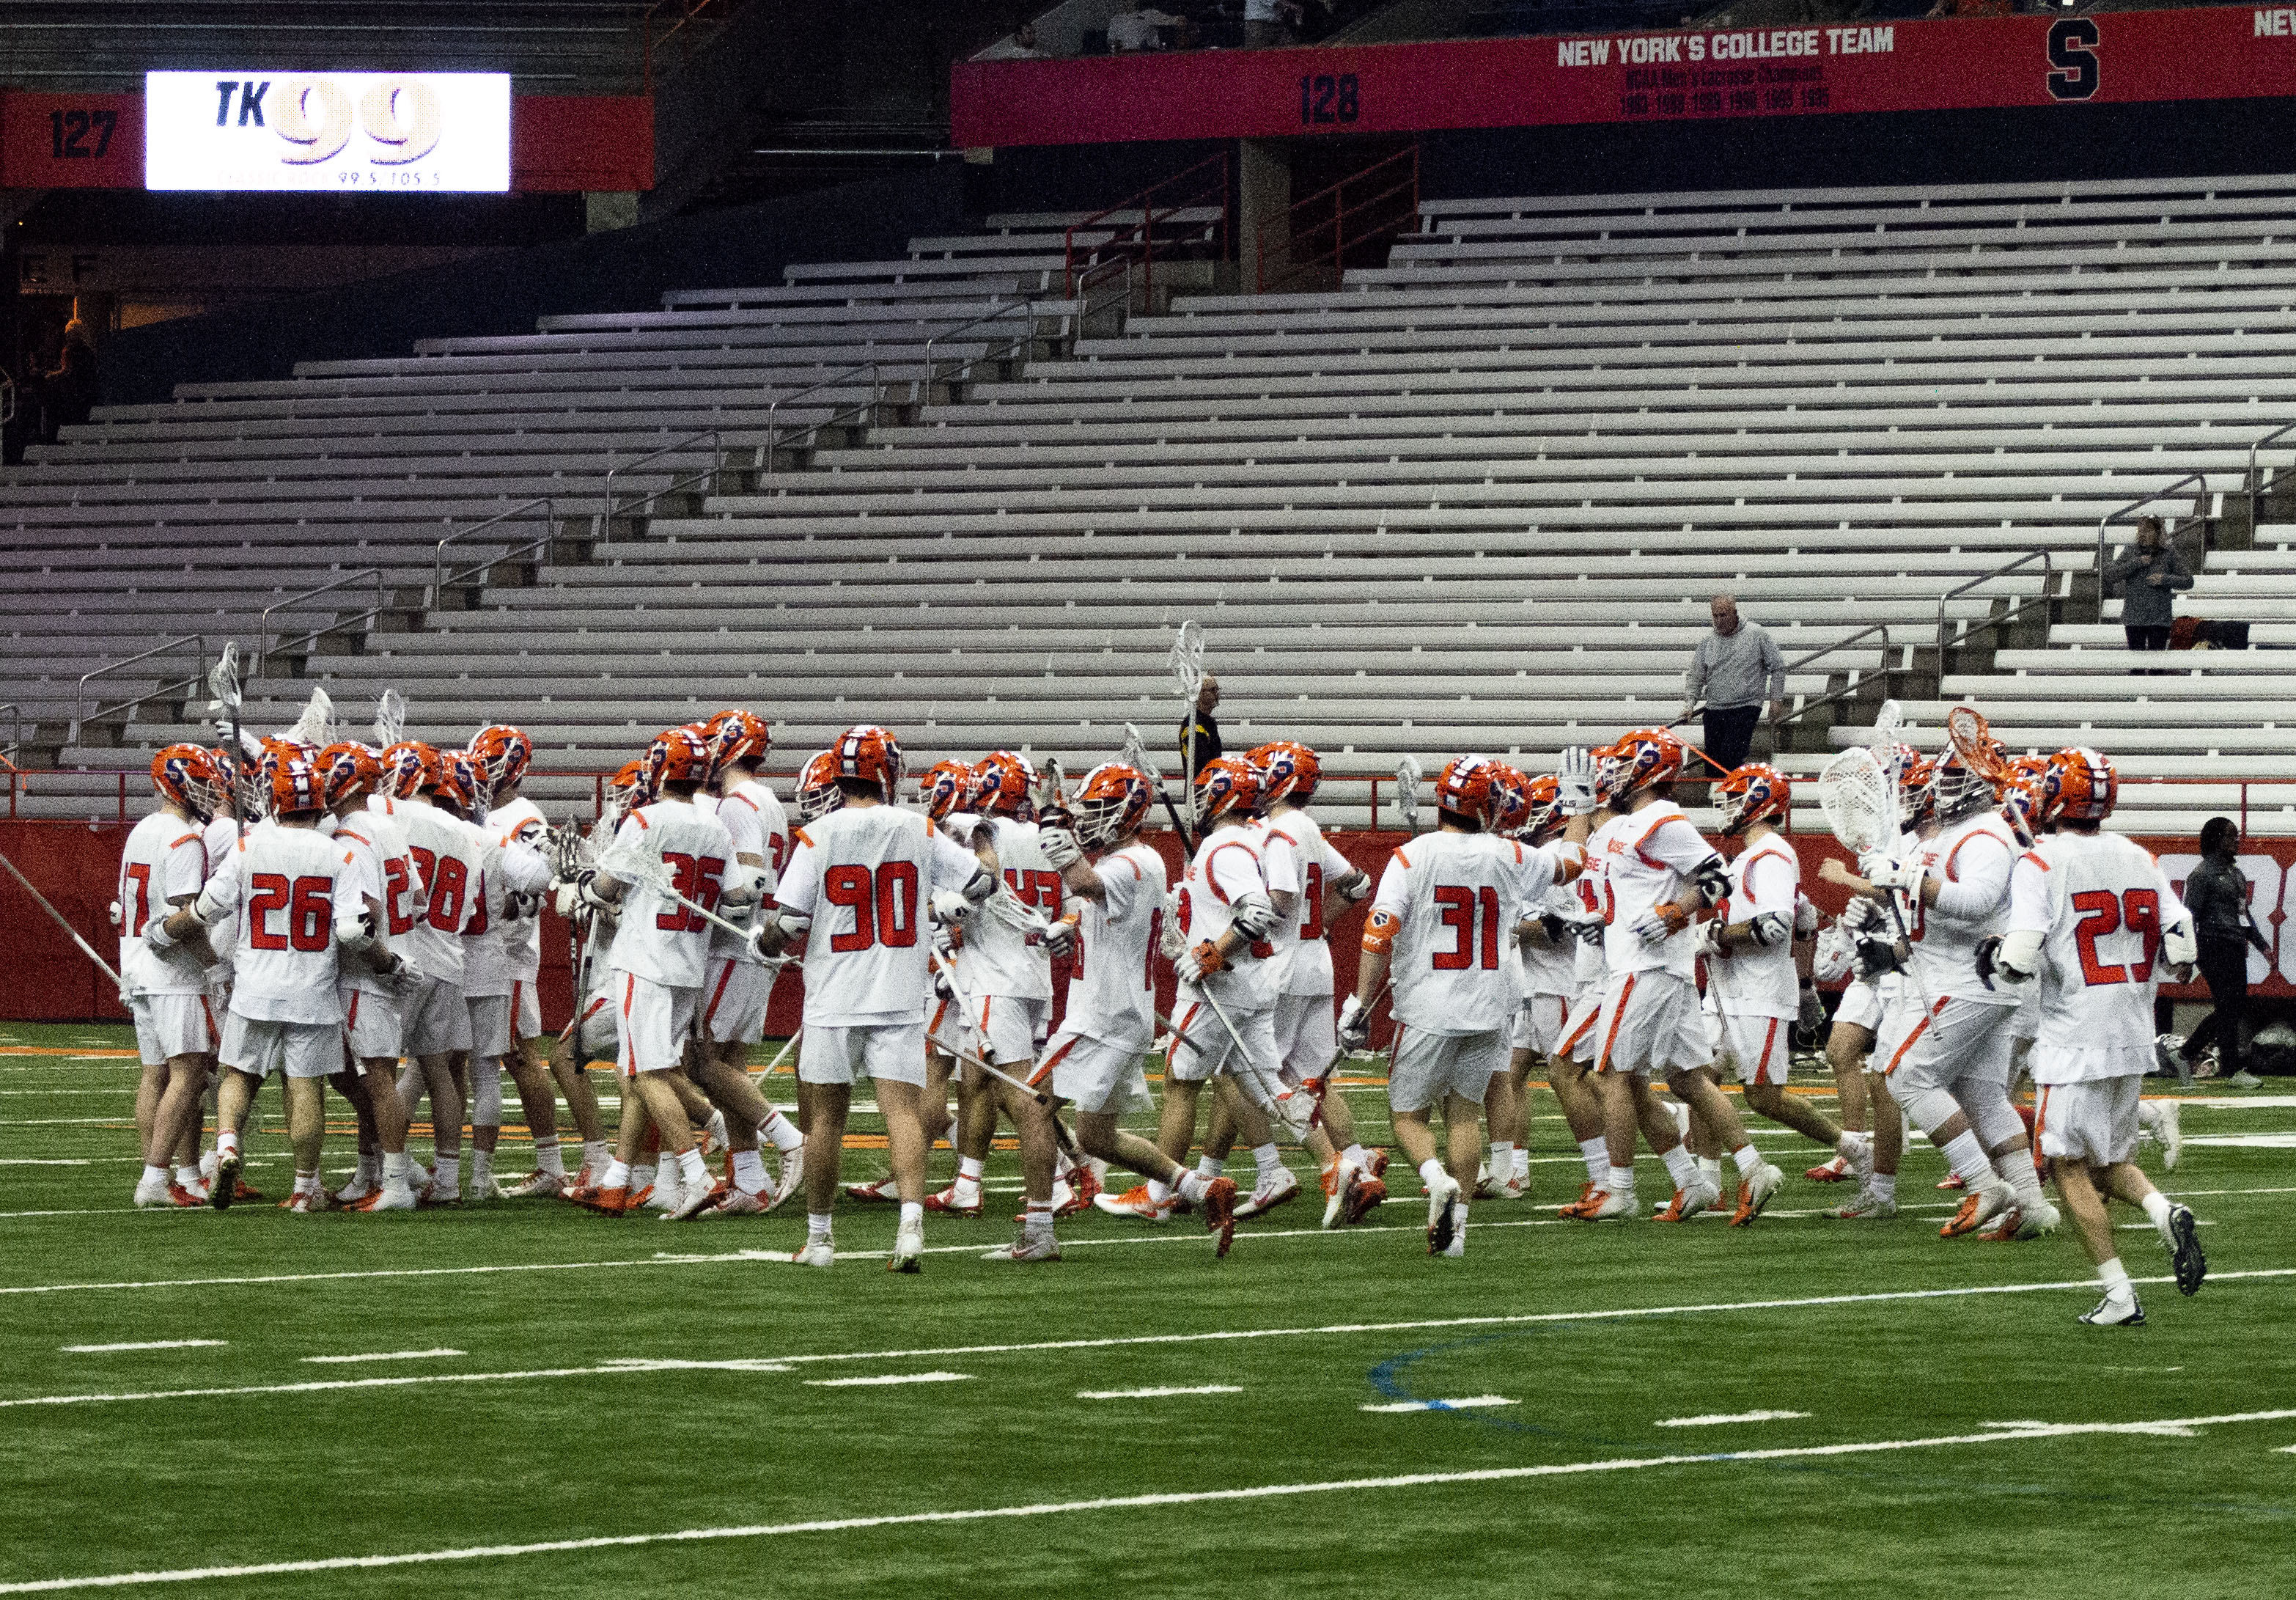 The Syracuse men's lacrosse team celebrates after winning their home opener versus Colgate 21-6 in the Carrier Dome.